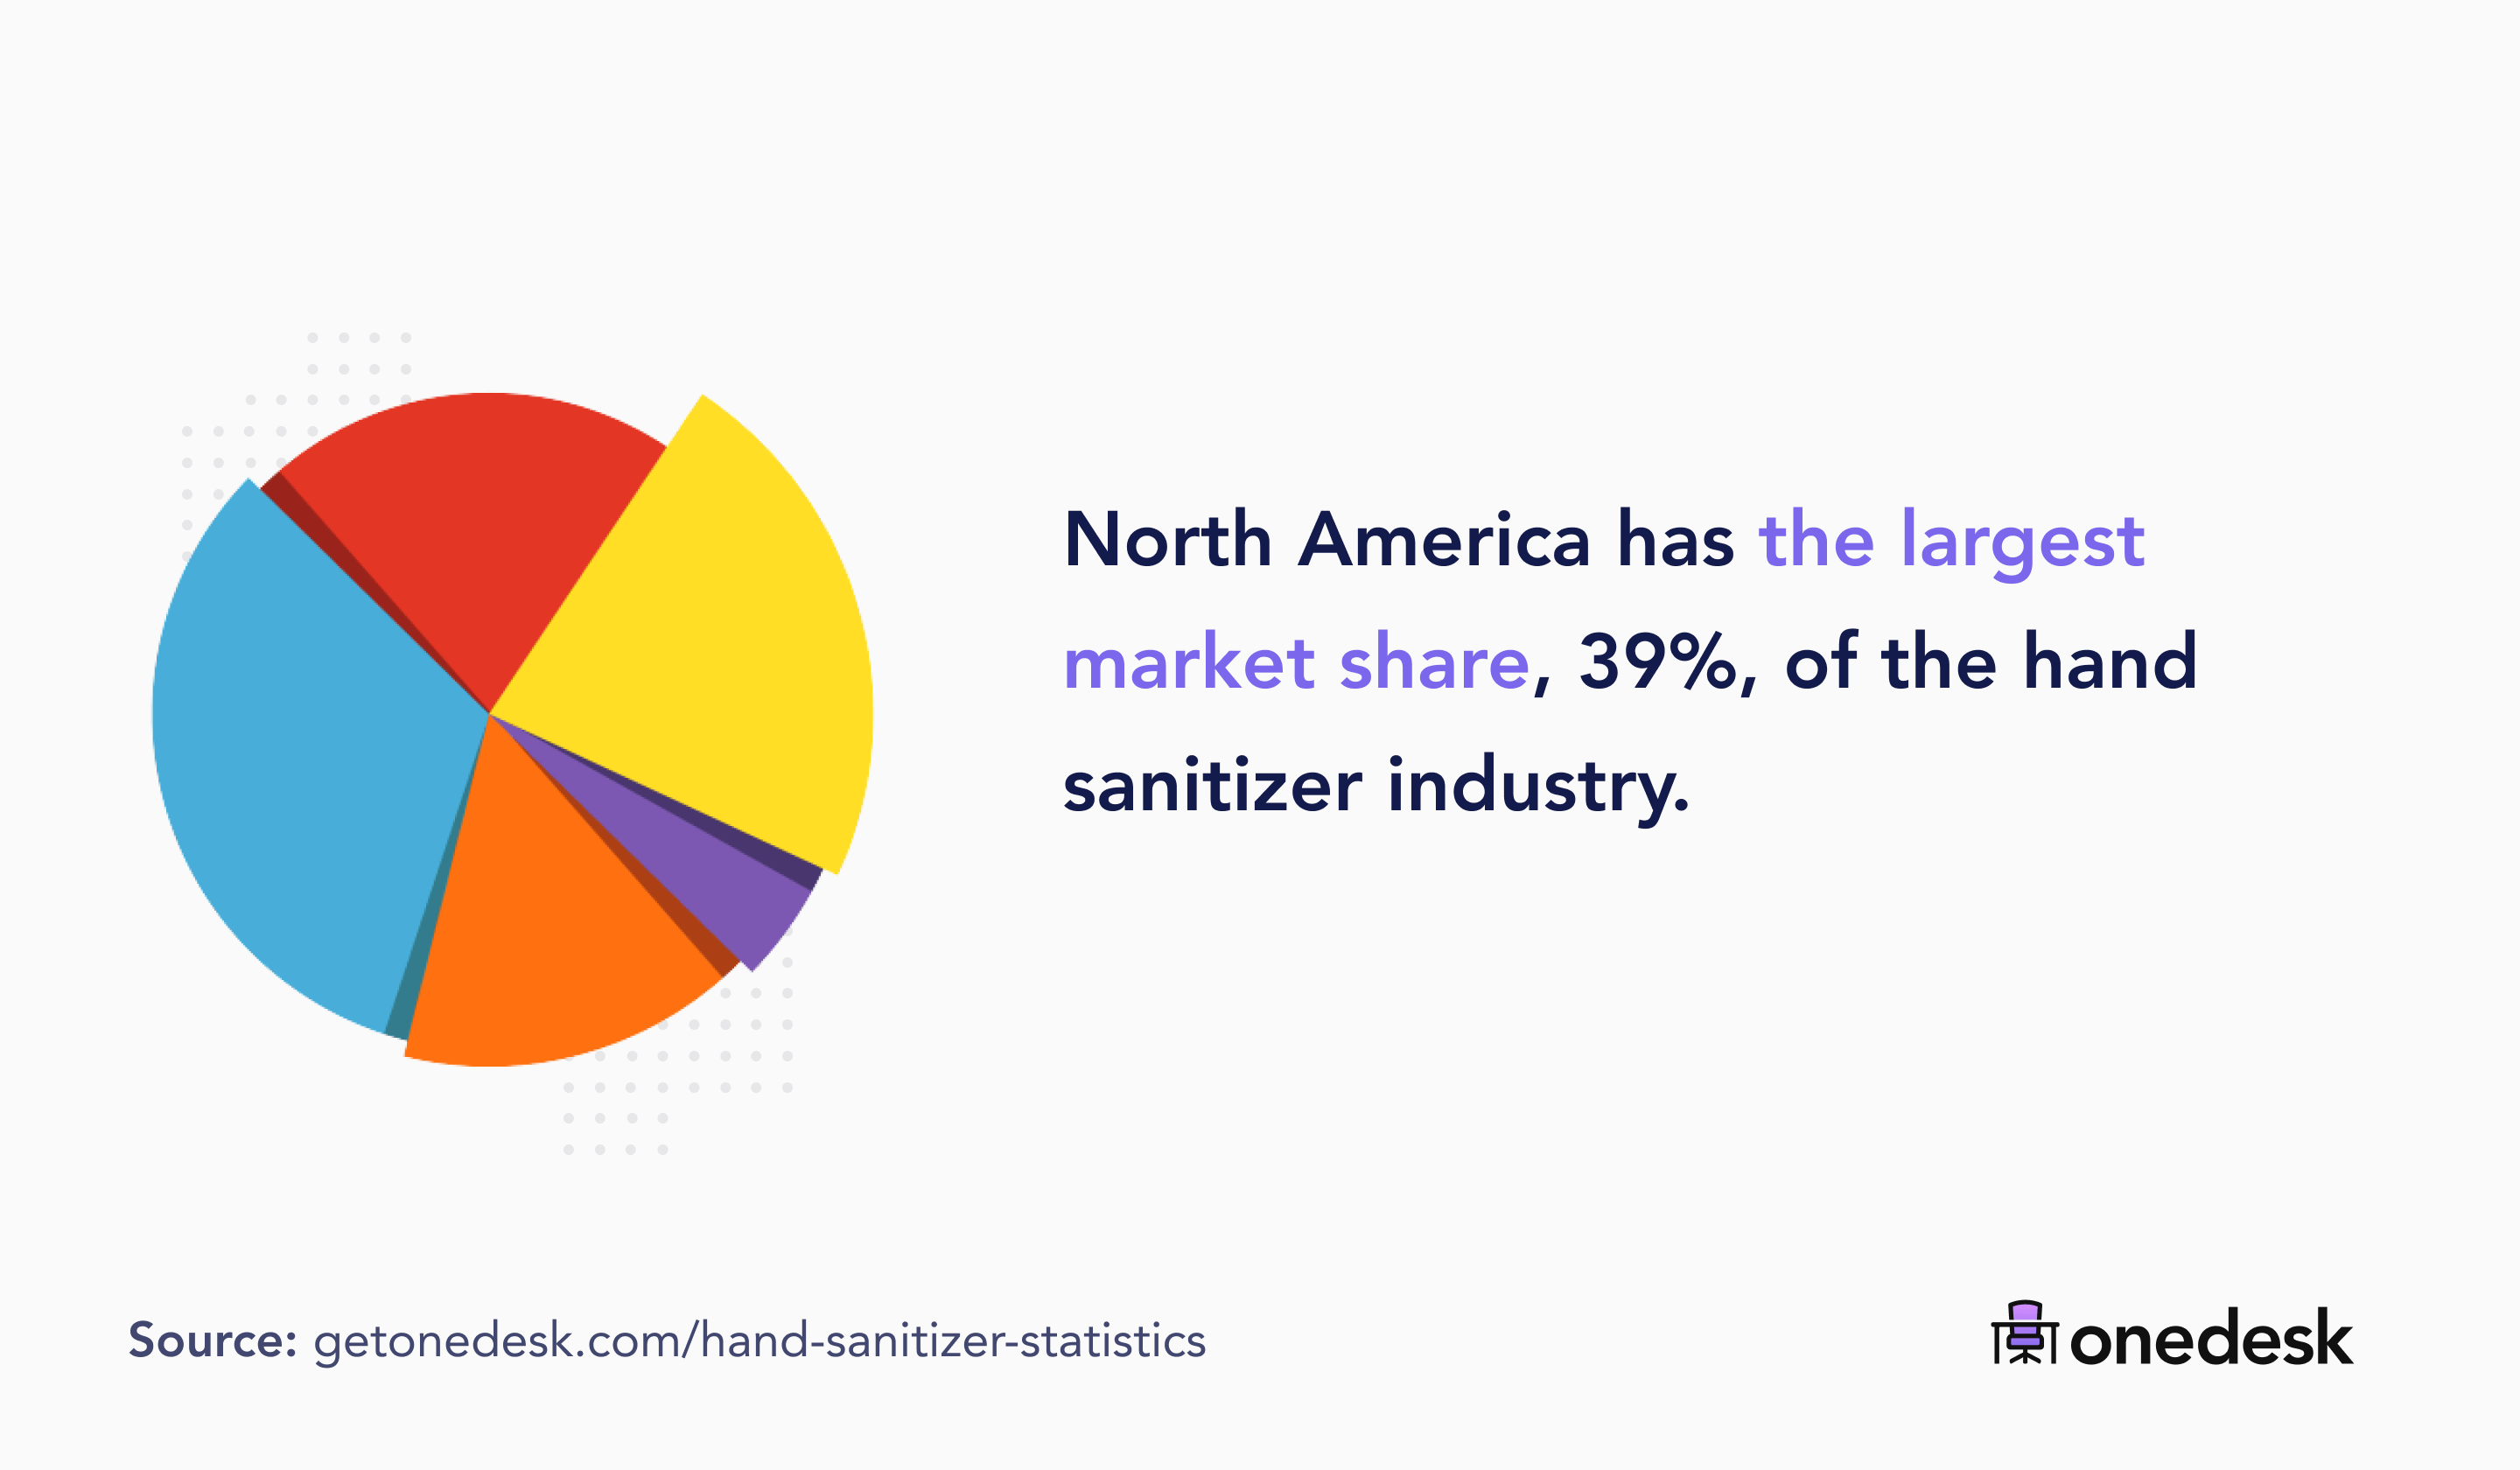 north america market share in the hand sanitizer industry